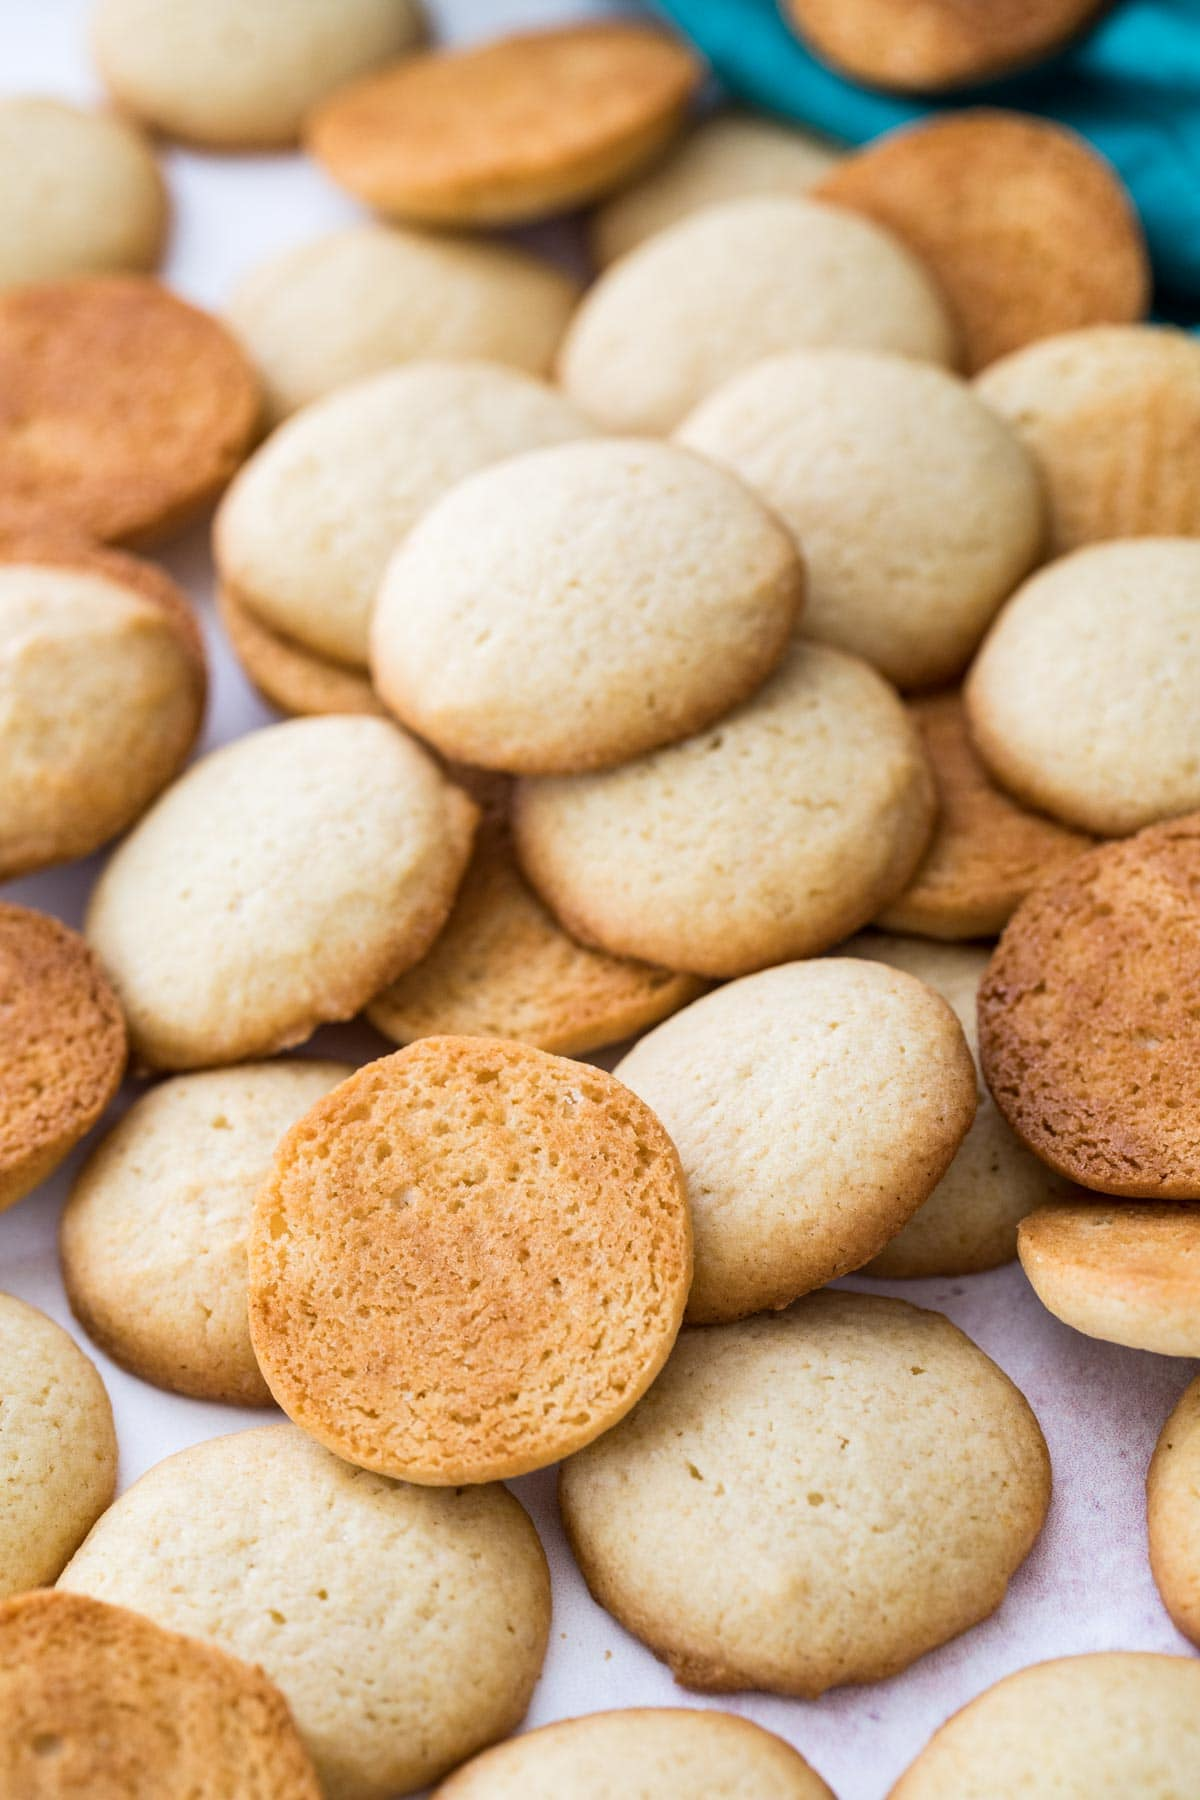 Closeup of wafers showing tops and bottoms